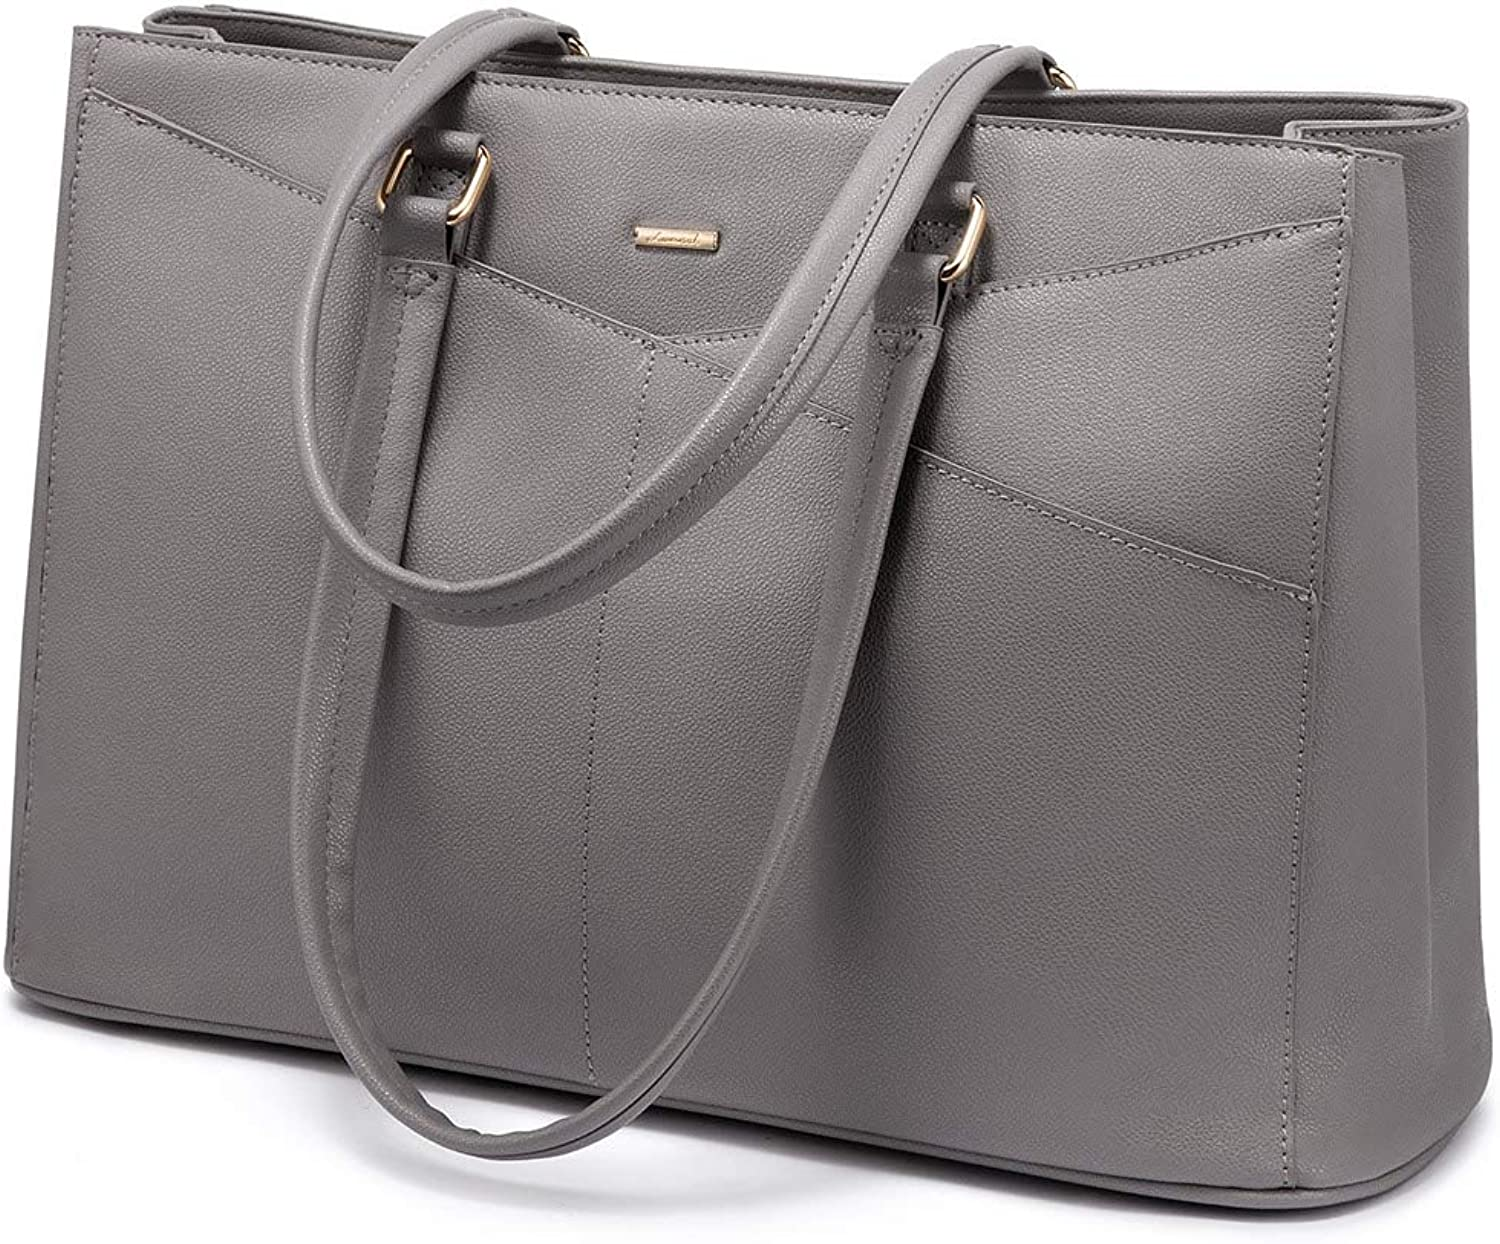 Laptop Tote Bag for Women 15.6 Inch Waterproof Leather Computer Bags Women Business Office Work Bag Briefcase